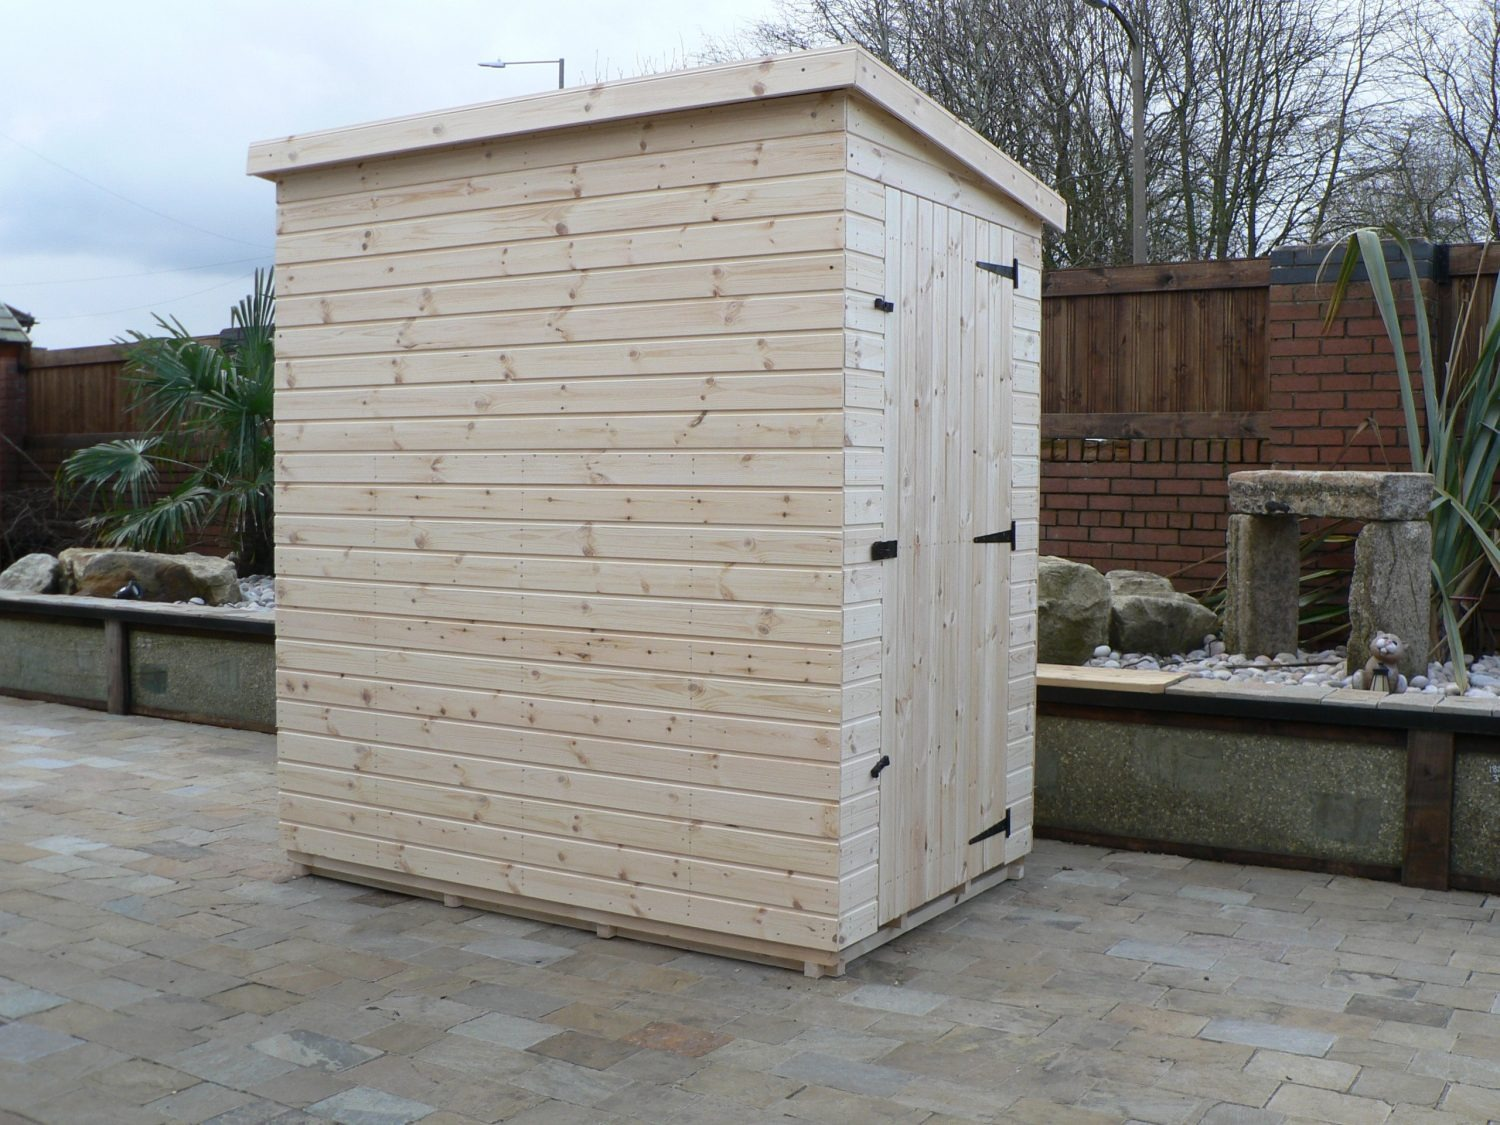 6' X 4' Pent Shed No Windows